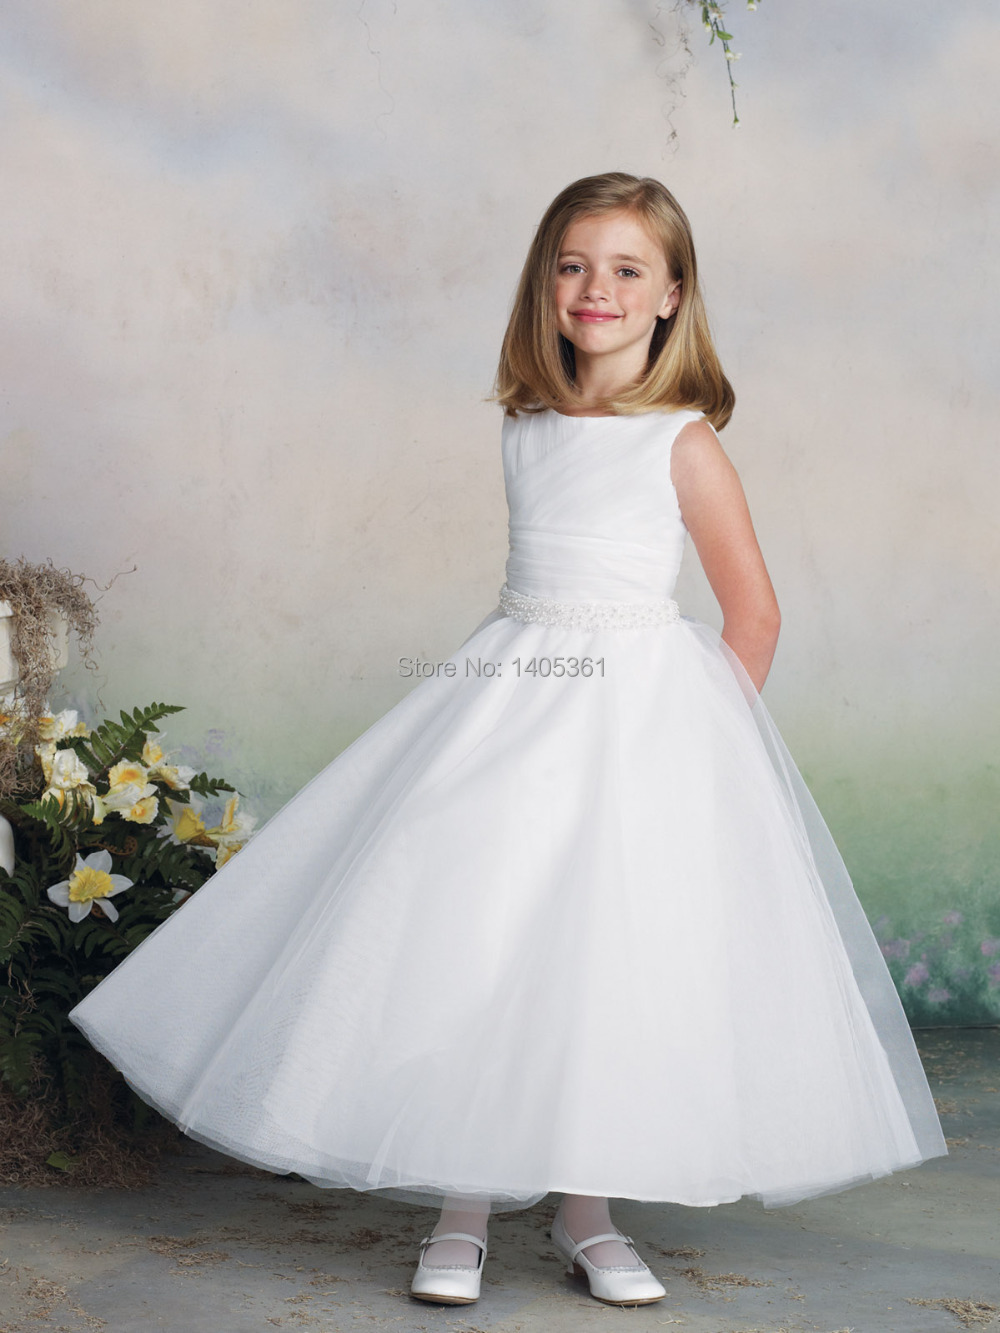 Pretty Flower Girl Com Image Collections Flower Decoration Ideas